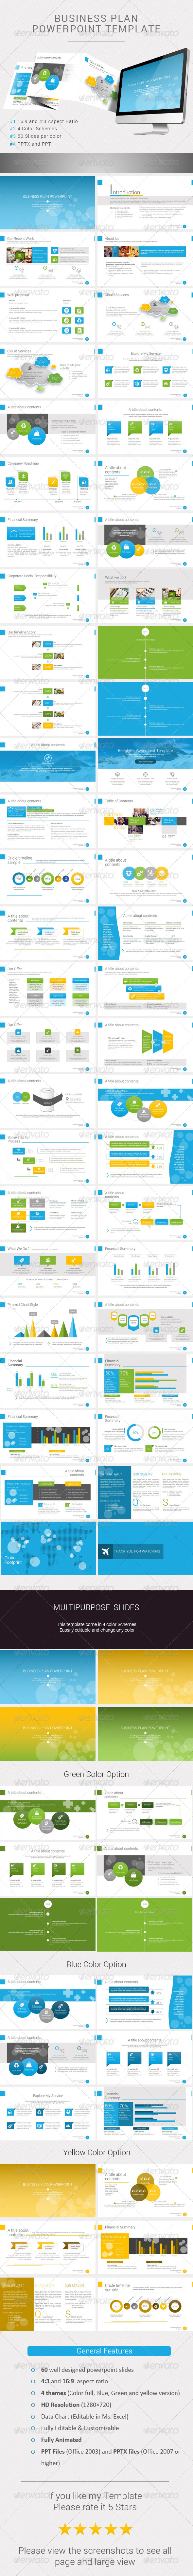 GraphicRiver Business Plan Powerpoint 8103284